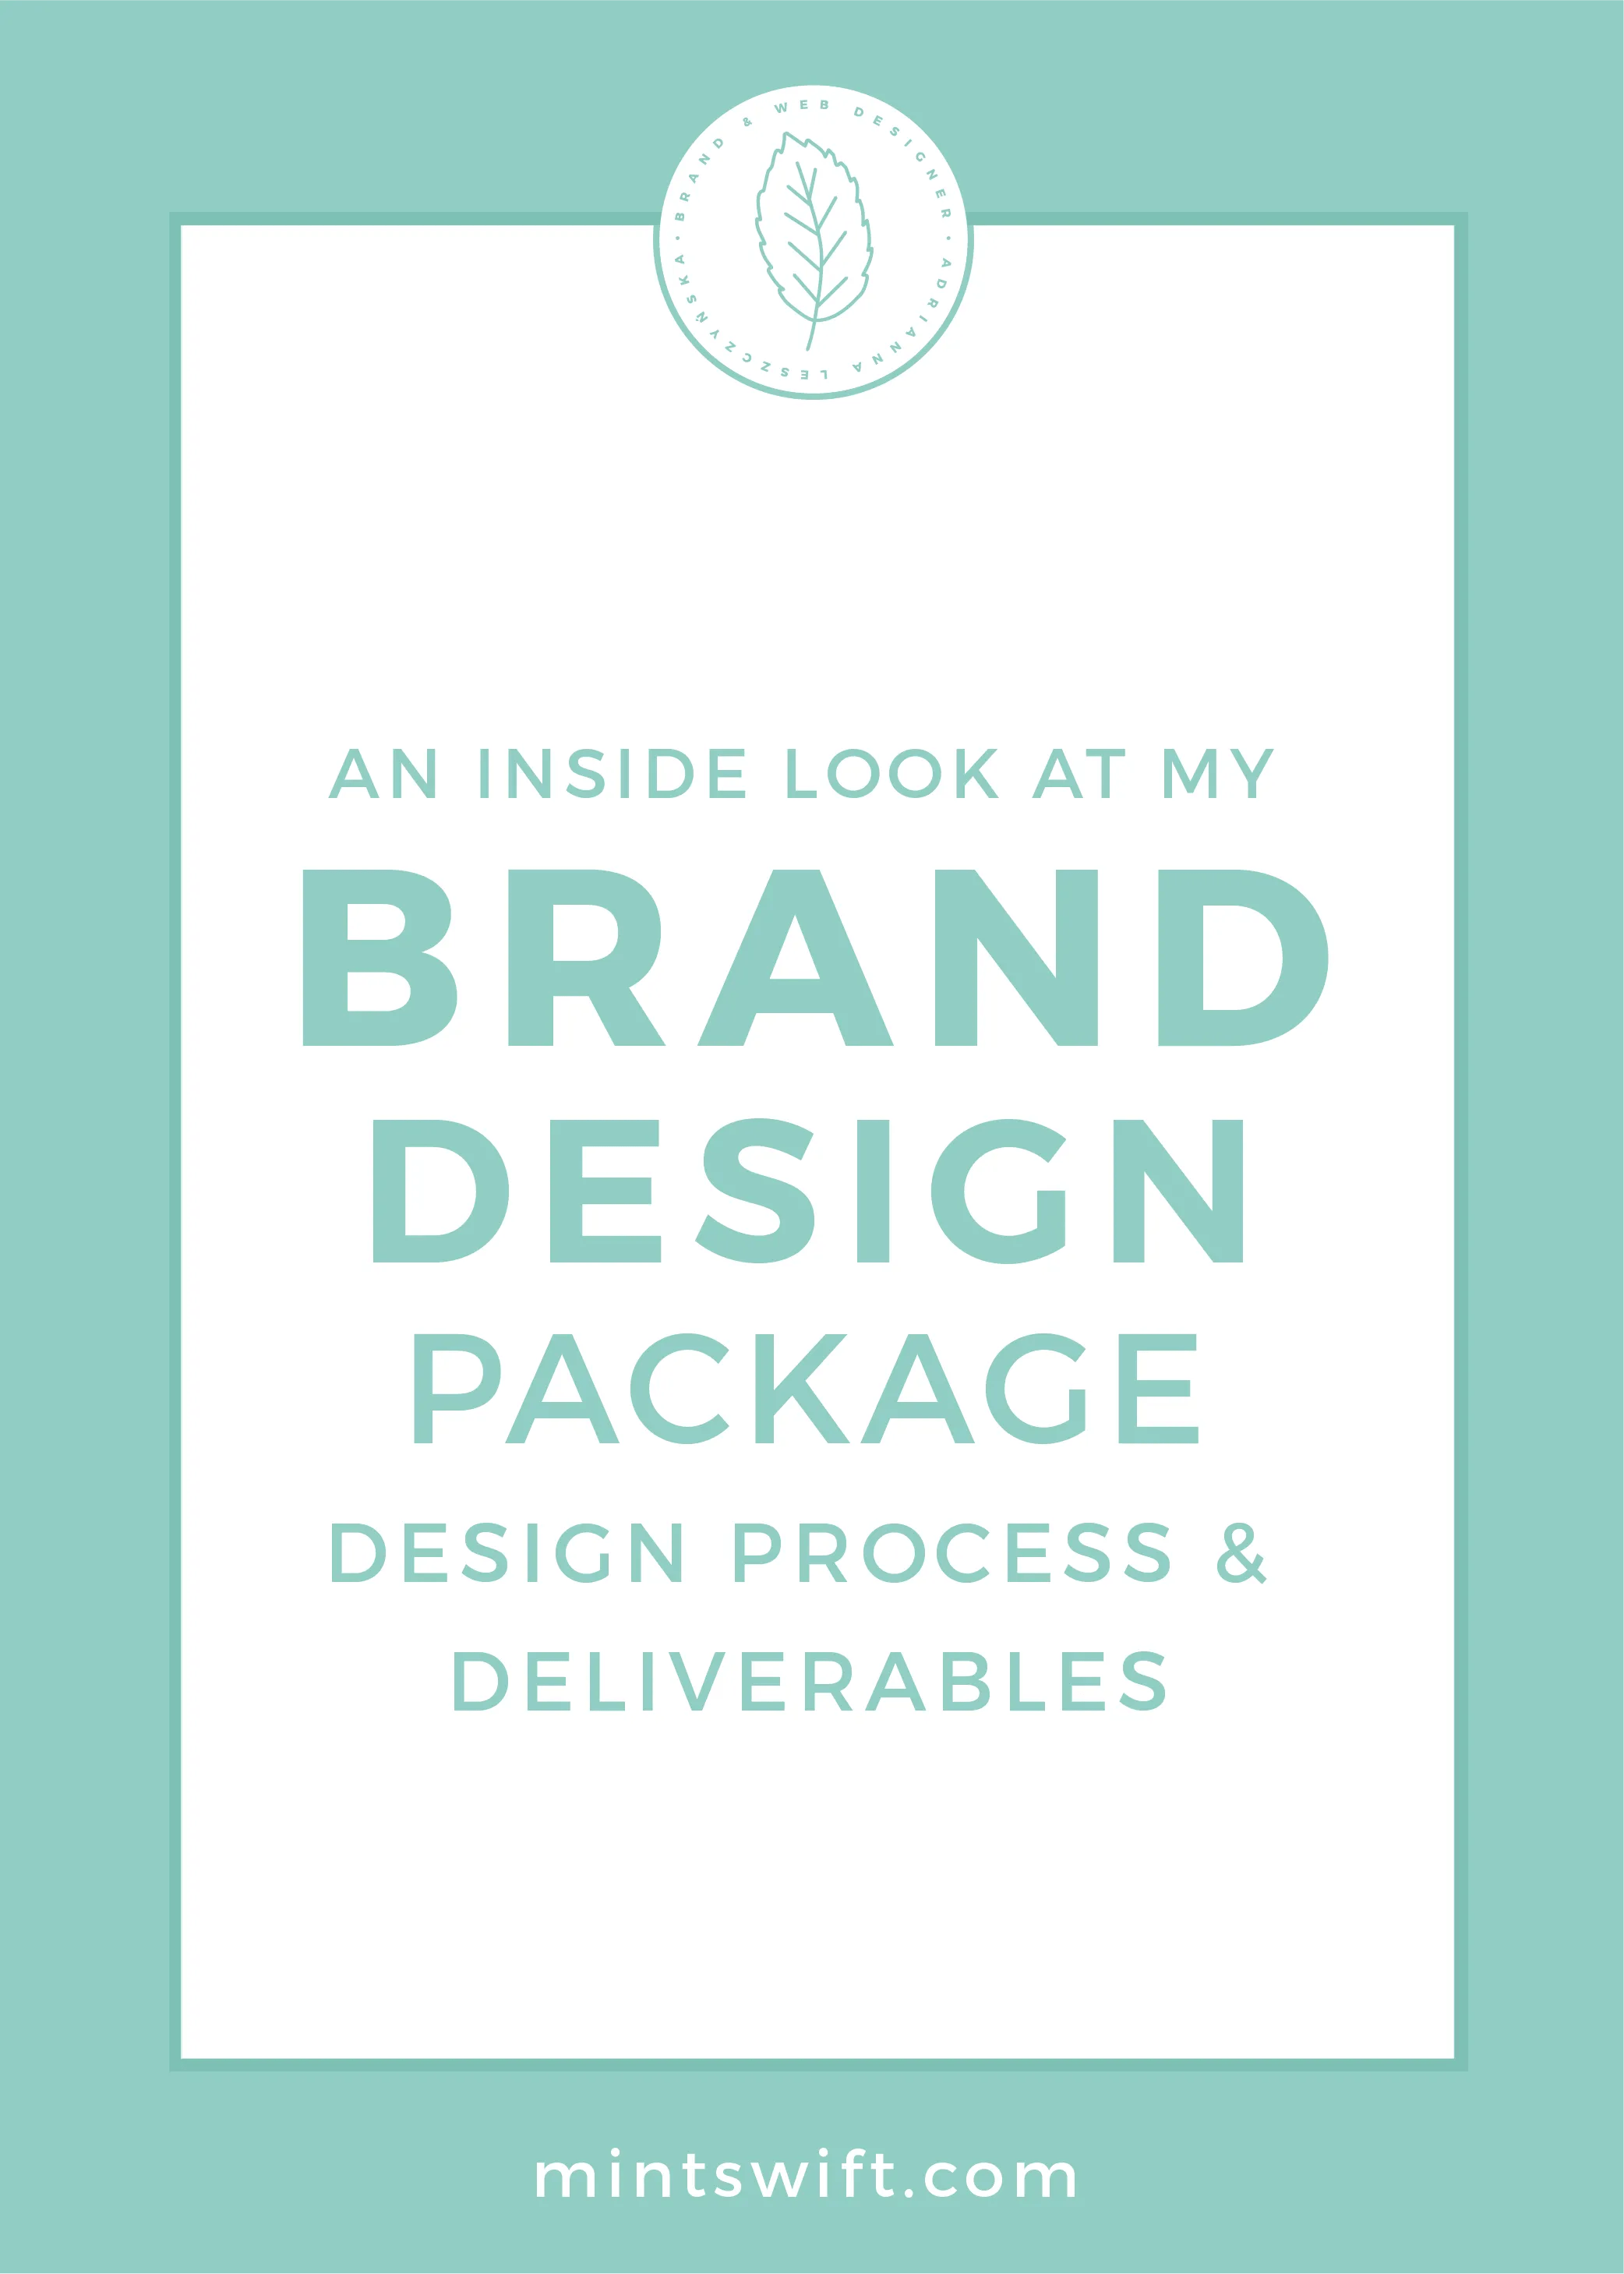 An Inside Look at My Brand Design Package Design Process & Deliverables by MintSwift